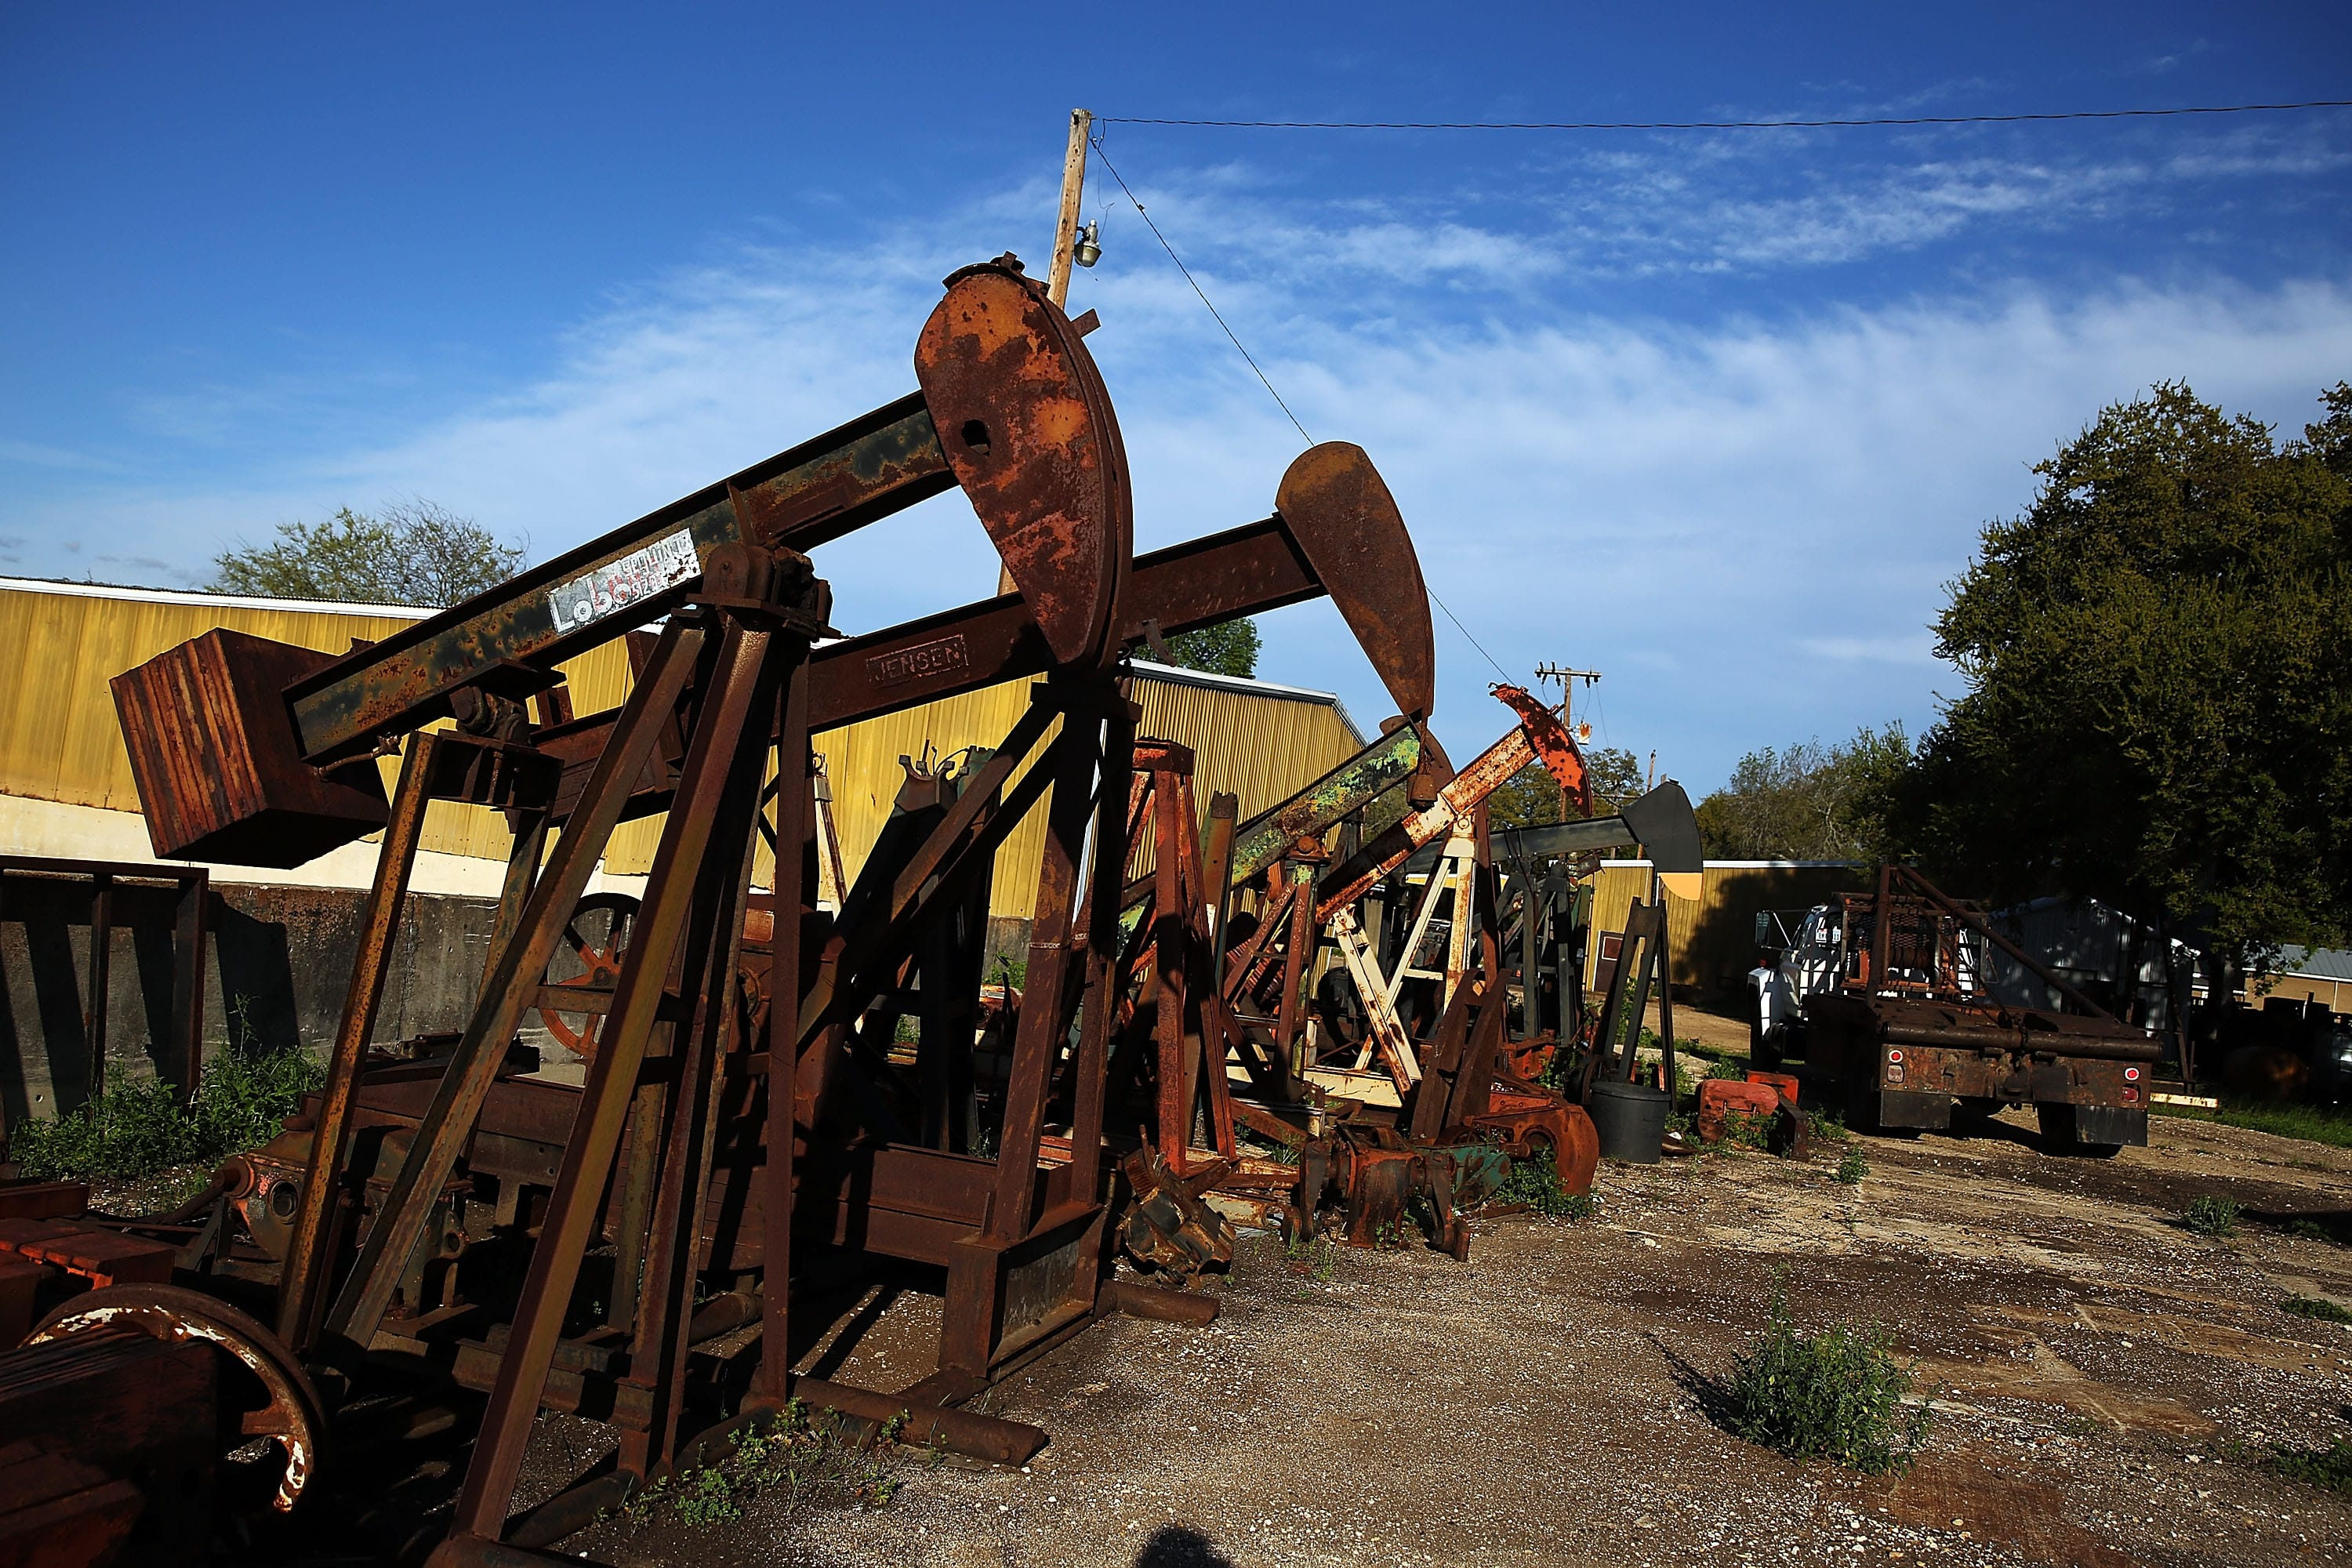 Oil prices drop as China economic data disappoints and US crude inventories rise